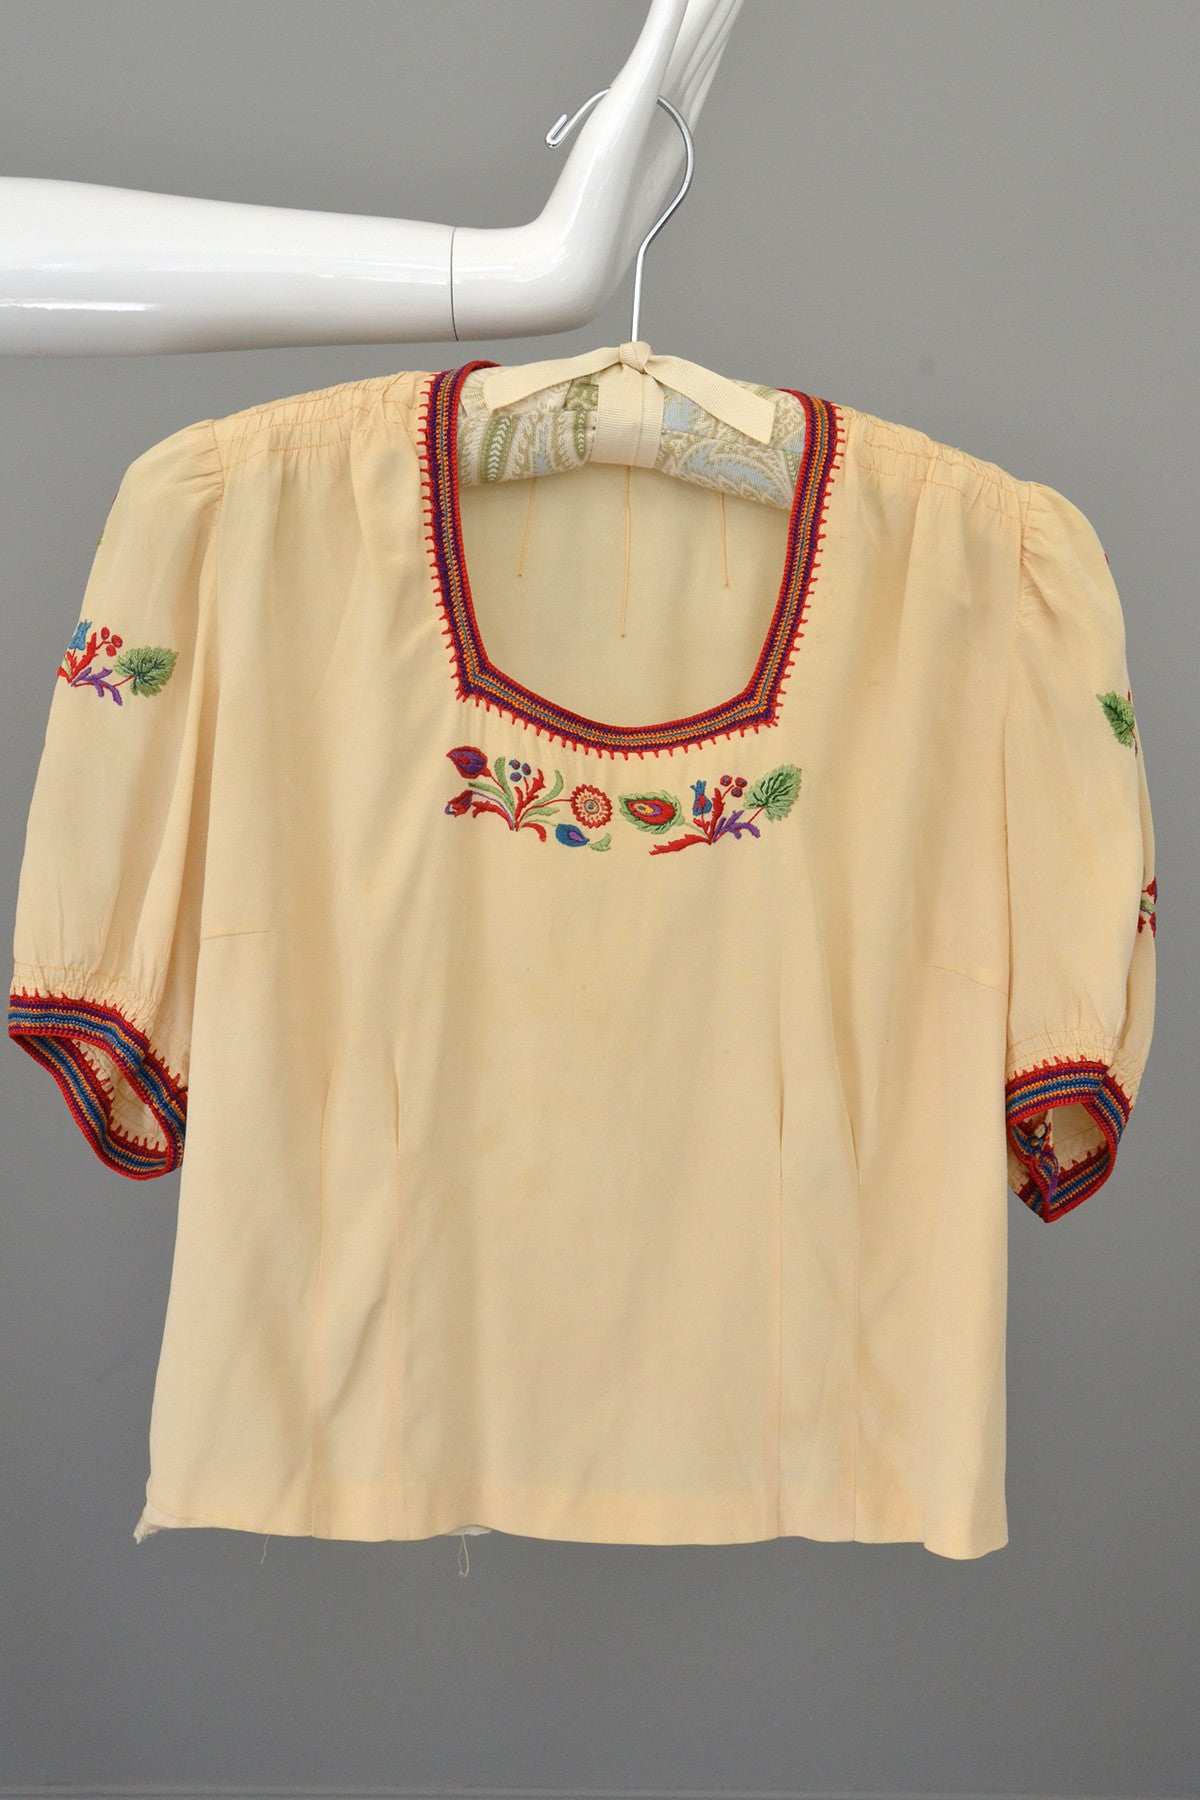 Cream Ecru Floral Embroidered Crochet Trim Vintage Peasant Top